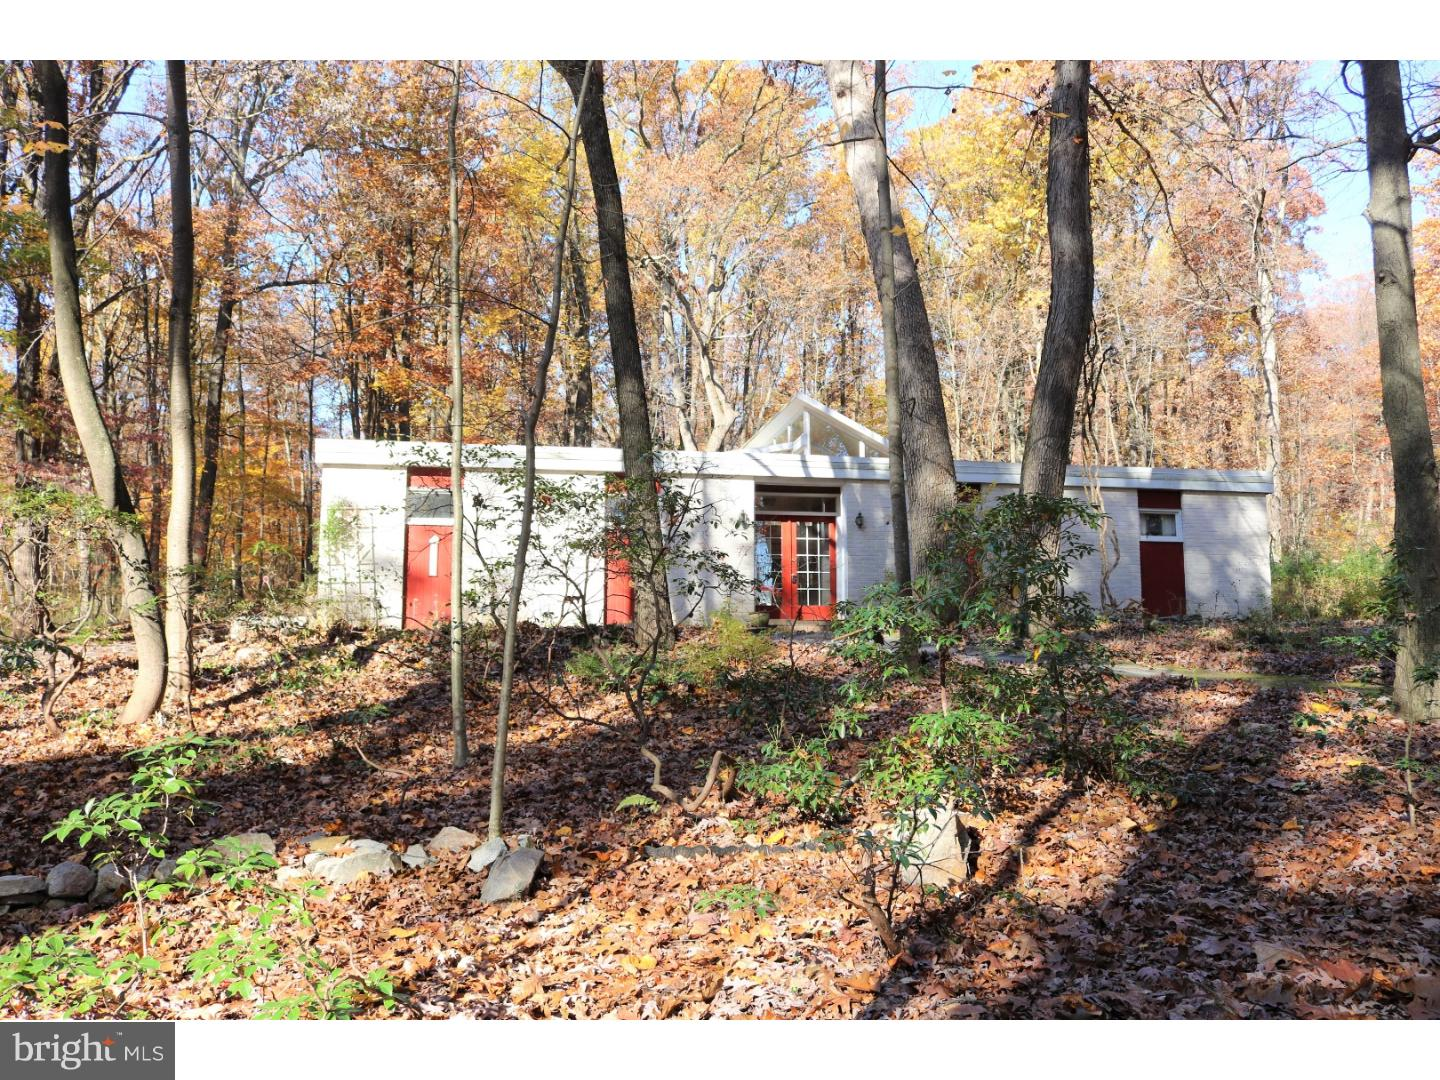 4660 OLEY TURNPIKE ROAD, READING, PA 19606